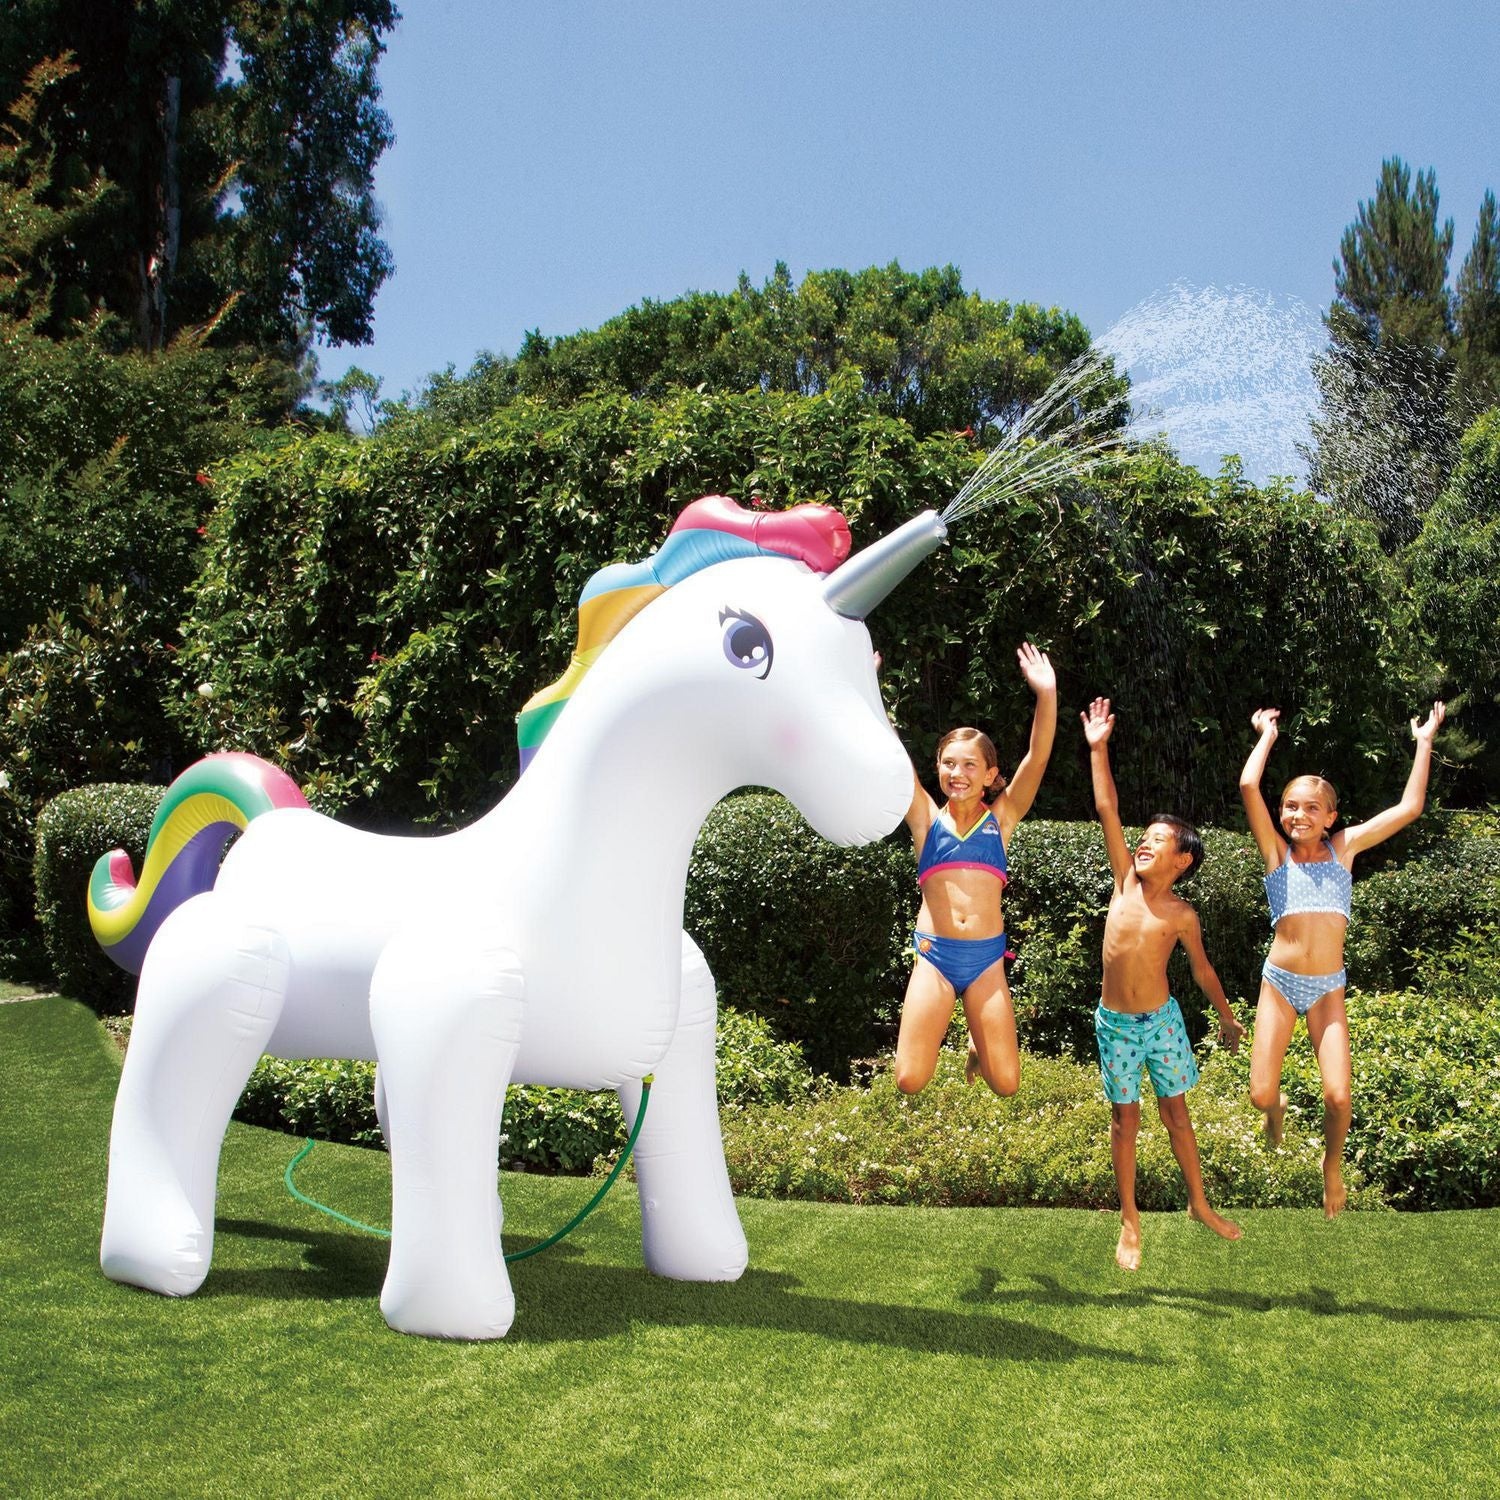 Giant Inflatable Garden Unicorn Sprinkler